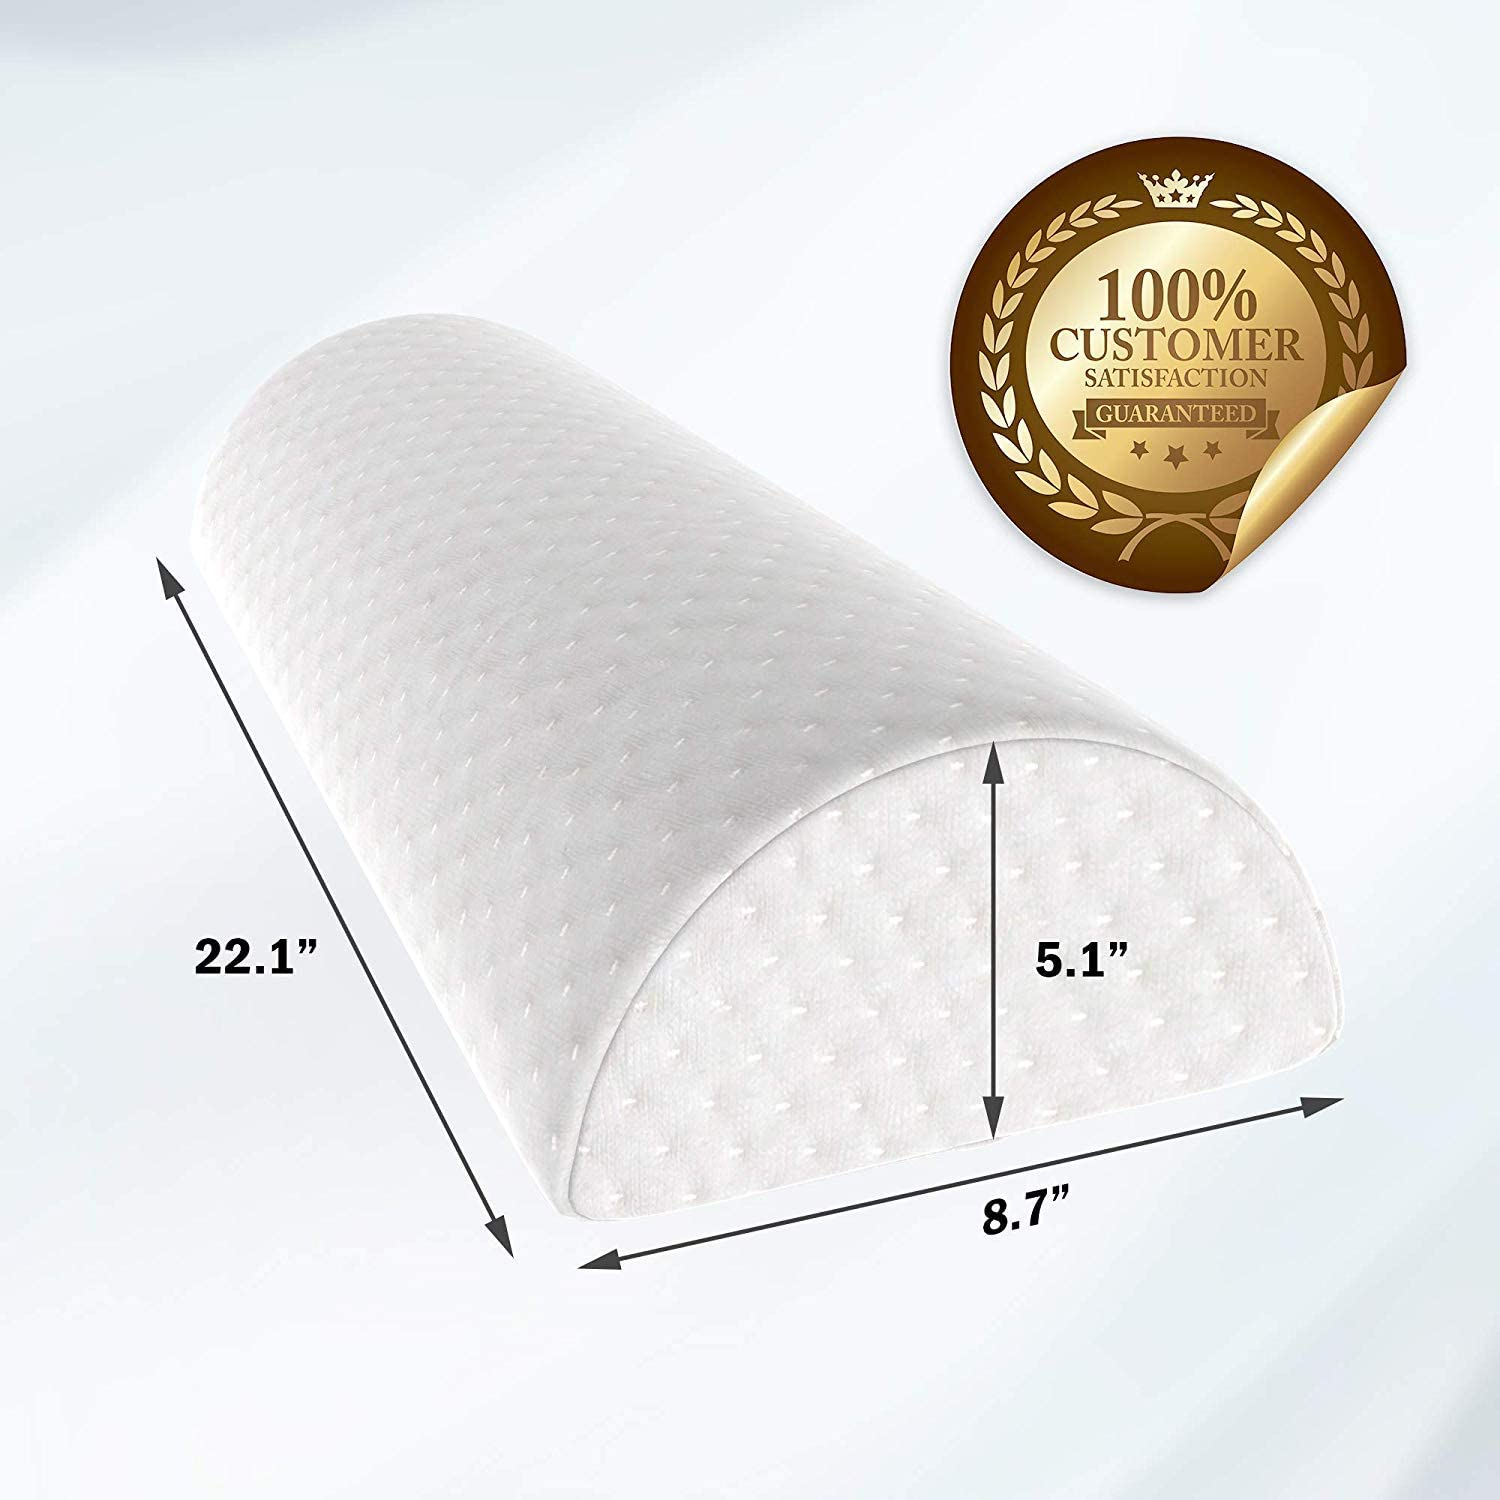 Half Moon Bolster Pillow - Knee Pillow for Back Pain Relief - Best Support for Sleeping on Side, Stomach or Back - 100% Memory Foam Semi Roll Leg Pillow with Washable Cover (XL, White): Home & Kitchen